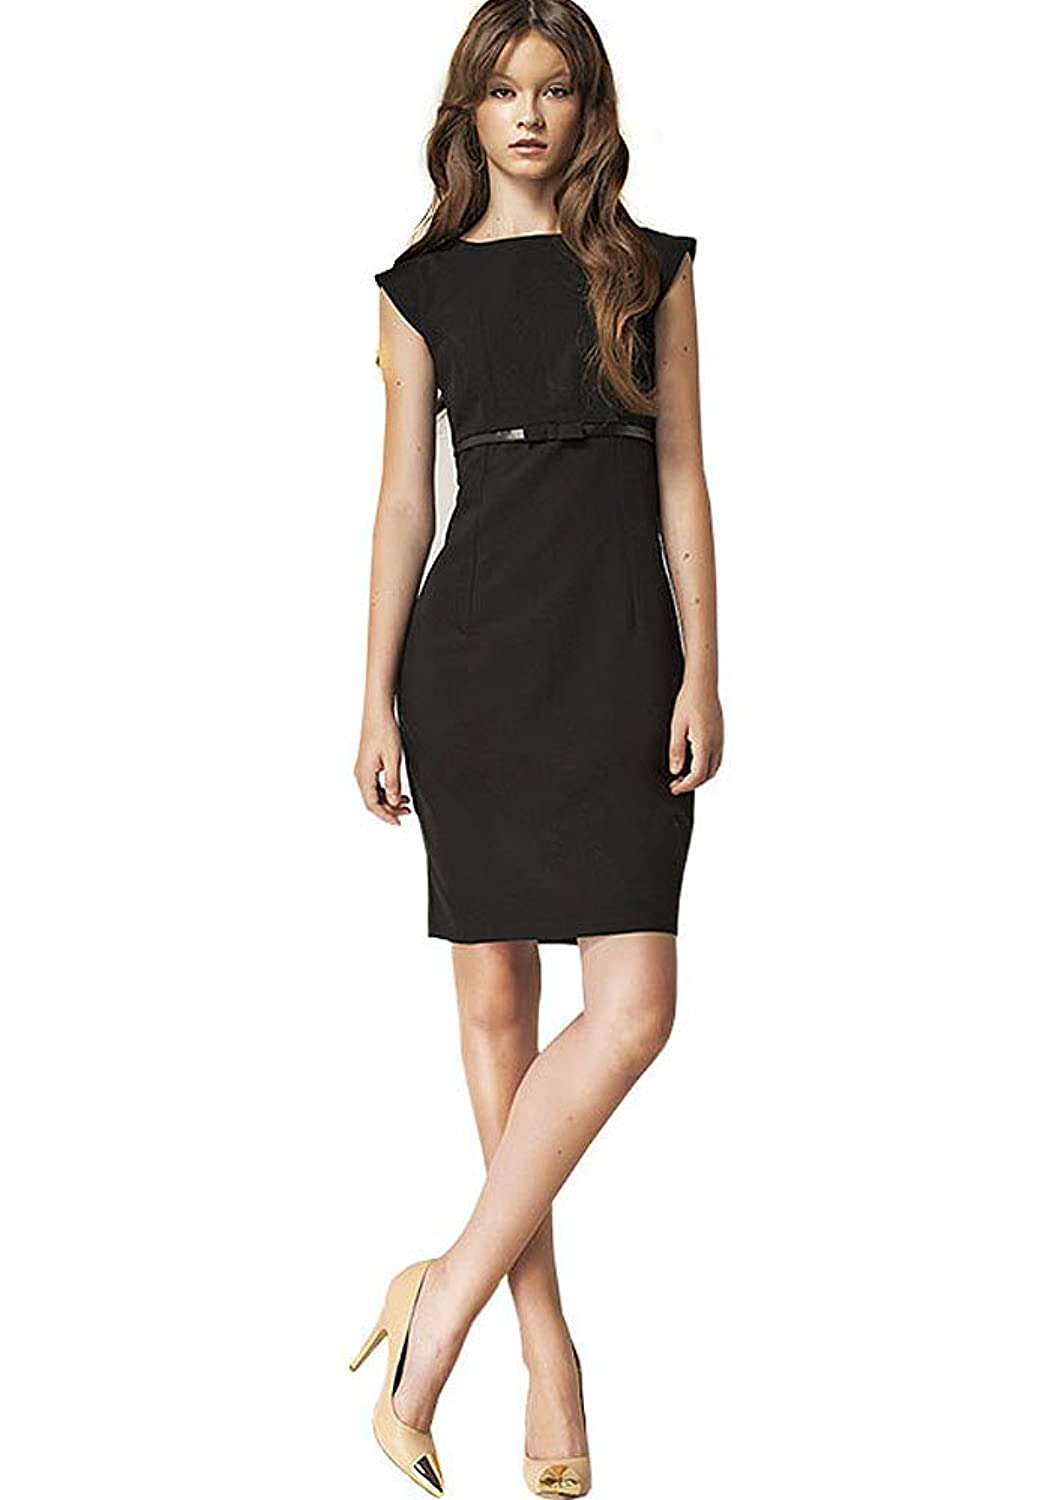 Victoriav Sheath Dress with Bow, Small, Black